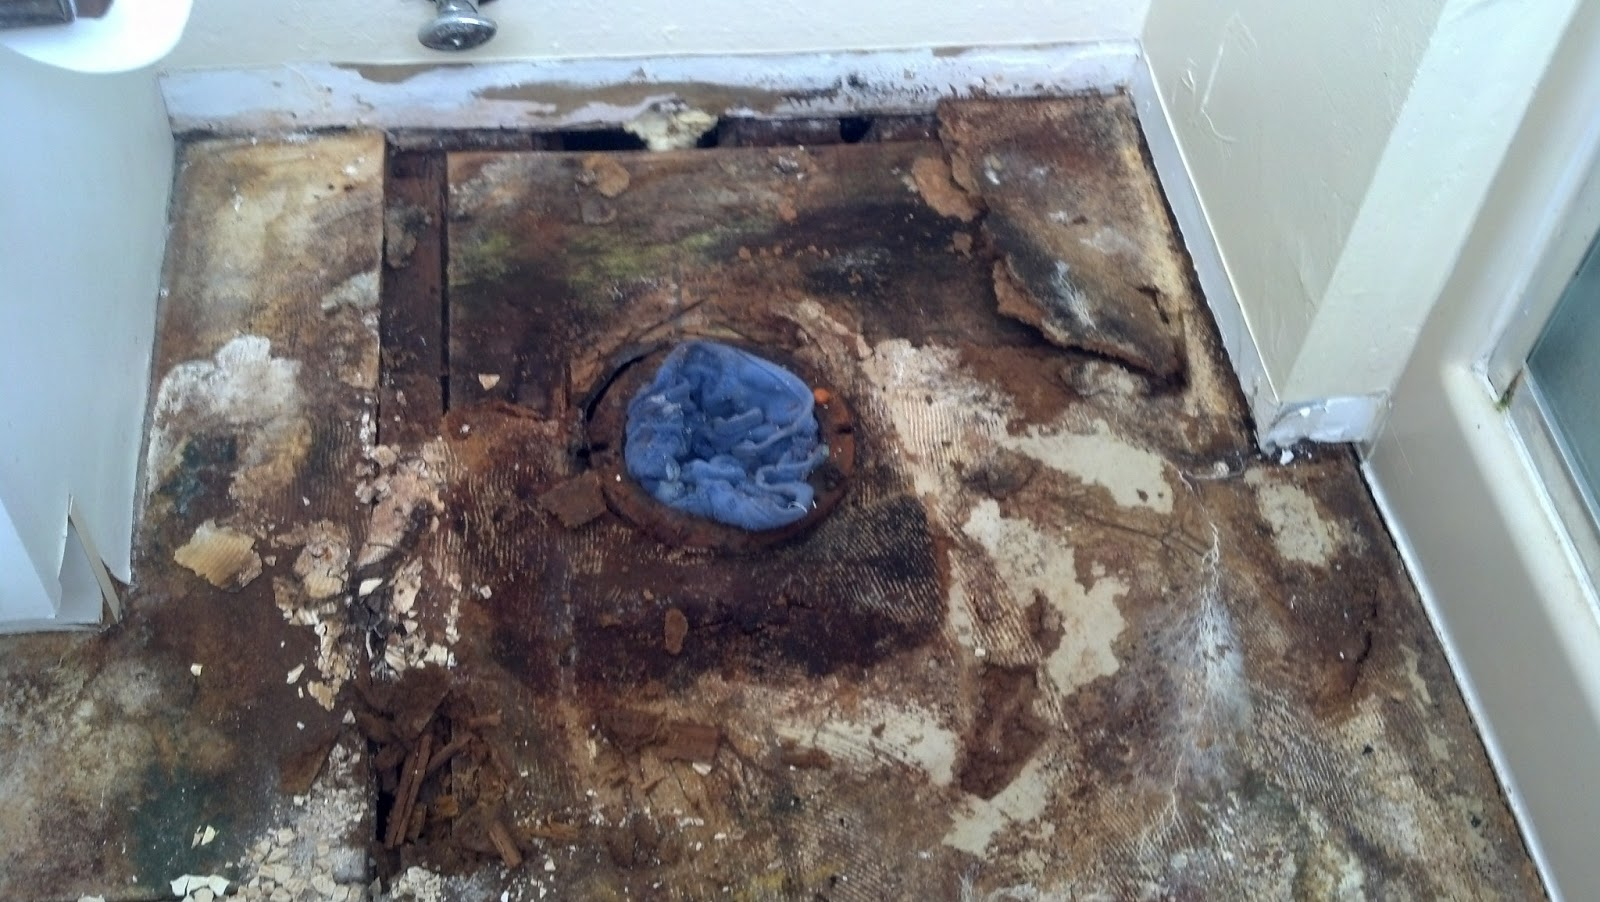 Steve 39 S Helpful Hints Handyman Blog Importance Of Replacing A Rotten Sub Floor